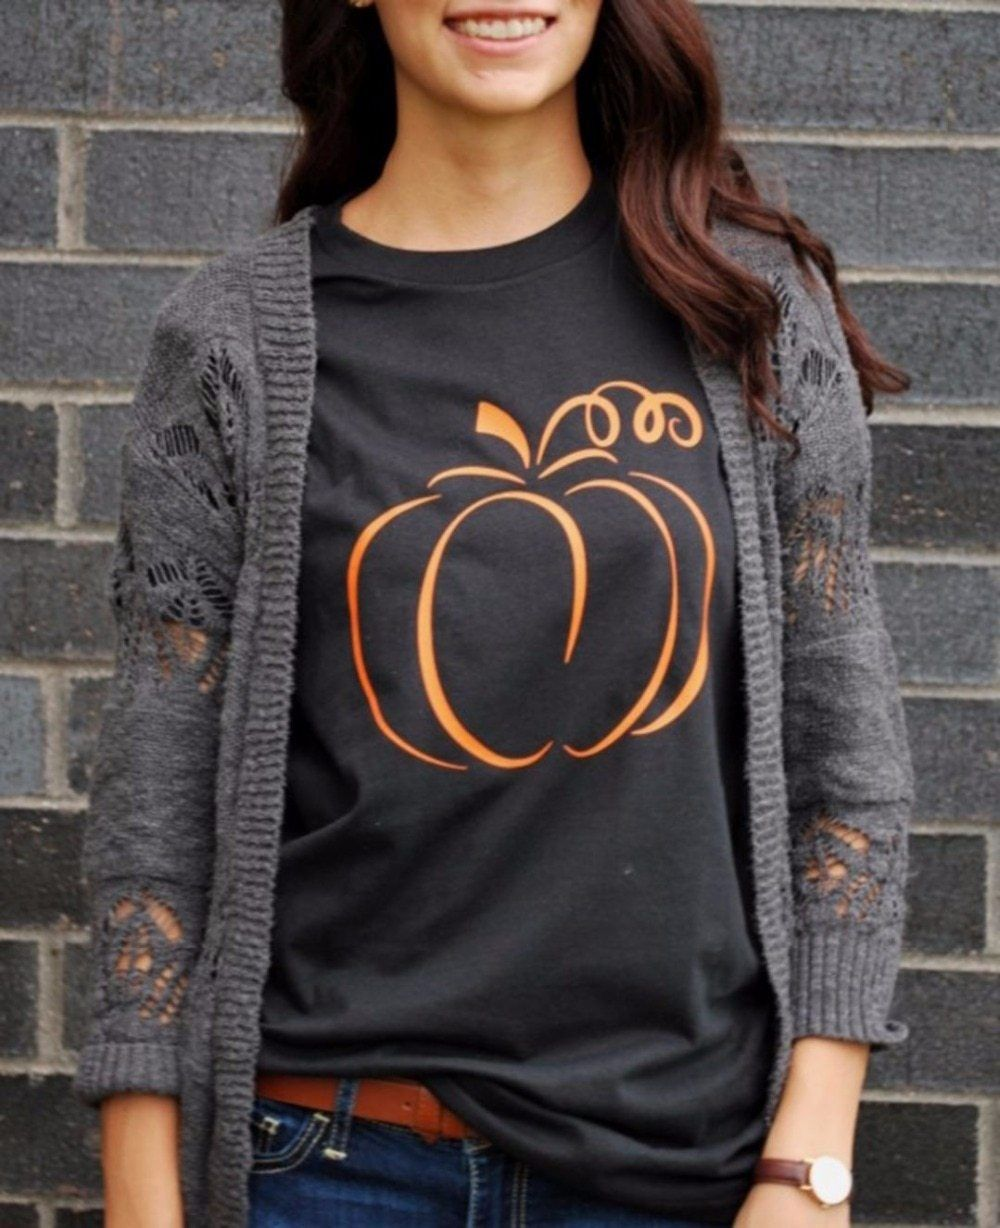 90ccf3f29 Halloween pumpkin graphic t-shirt women fashion 90s funny cotton tops  grunge party style casual tees holiday gift tumblr t shirt #shirt #funny  #women ...